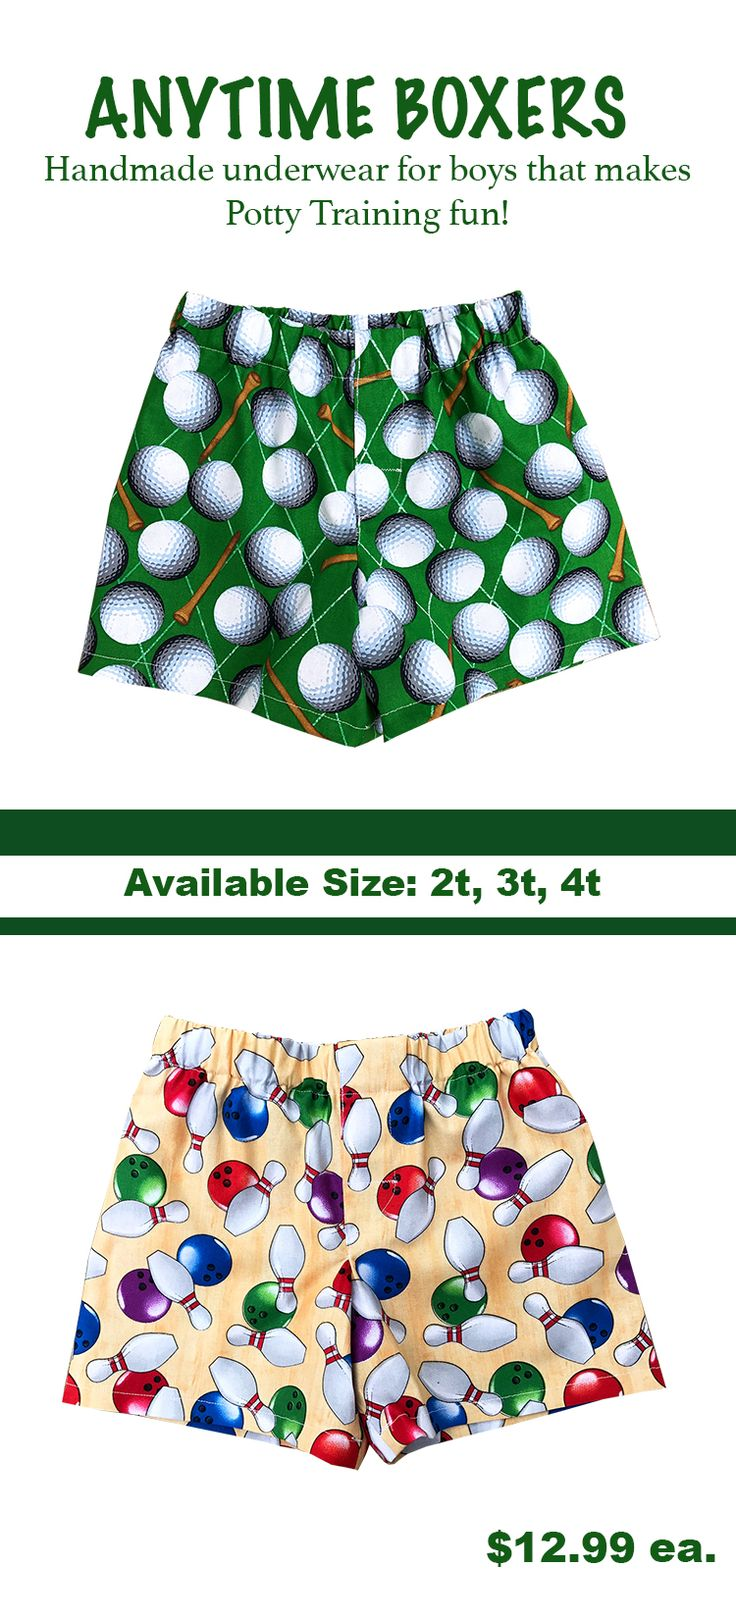 Toddler Boys Boxer Shorts. Makes Potty Training fun! Kids Boxer Shorts Brief Underwear #boy #boymom #boybirthday #shorts #boys #boysfashion #pottytraining #boxer #boxershorts #pajamas #patriots #redwhiteandblue #daddy #preschool #kindergarten #love #thursday #handmade #happy #happybirthday #gifts #giftidea #shopping #freeshipping #craft #toddler #toddlerfashion #toddlerlife #shorts #play #fish #fishing #americanstyle #spring #summer #4thofjuly